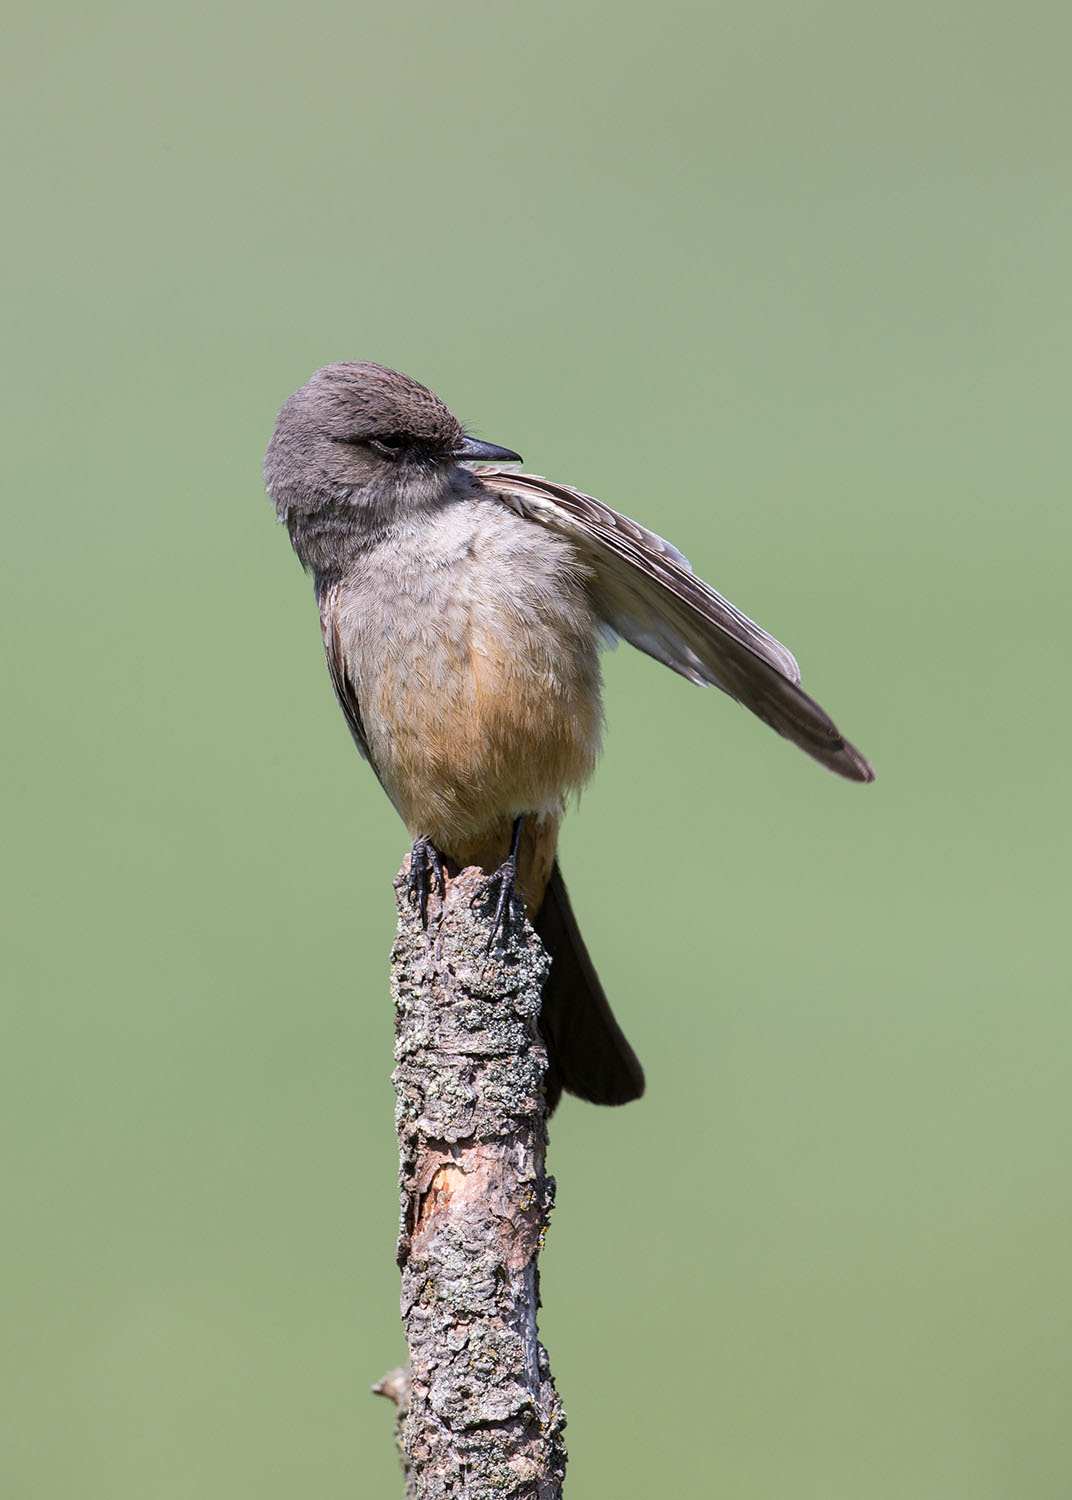 Say's Phoebe preening its feathers.